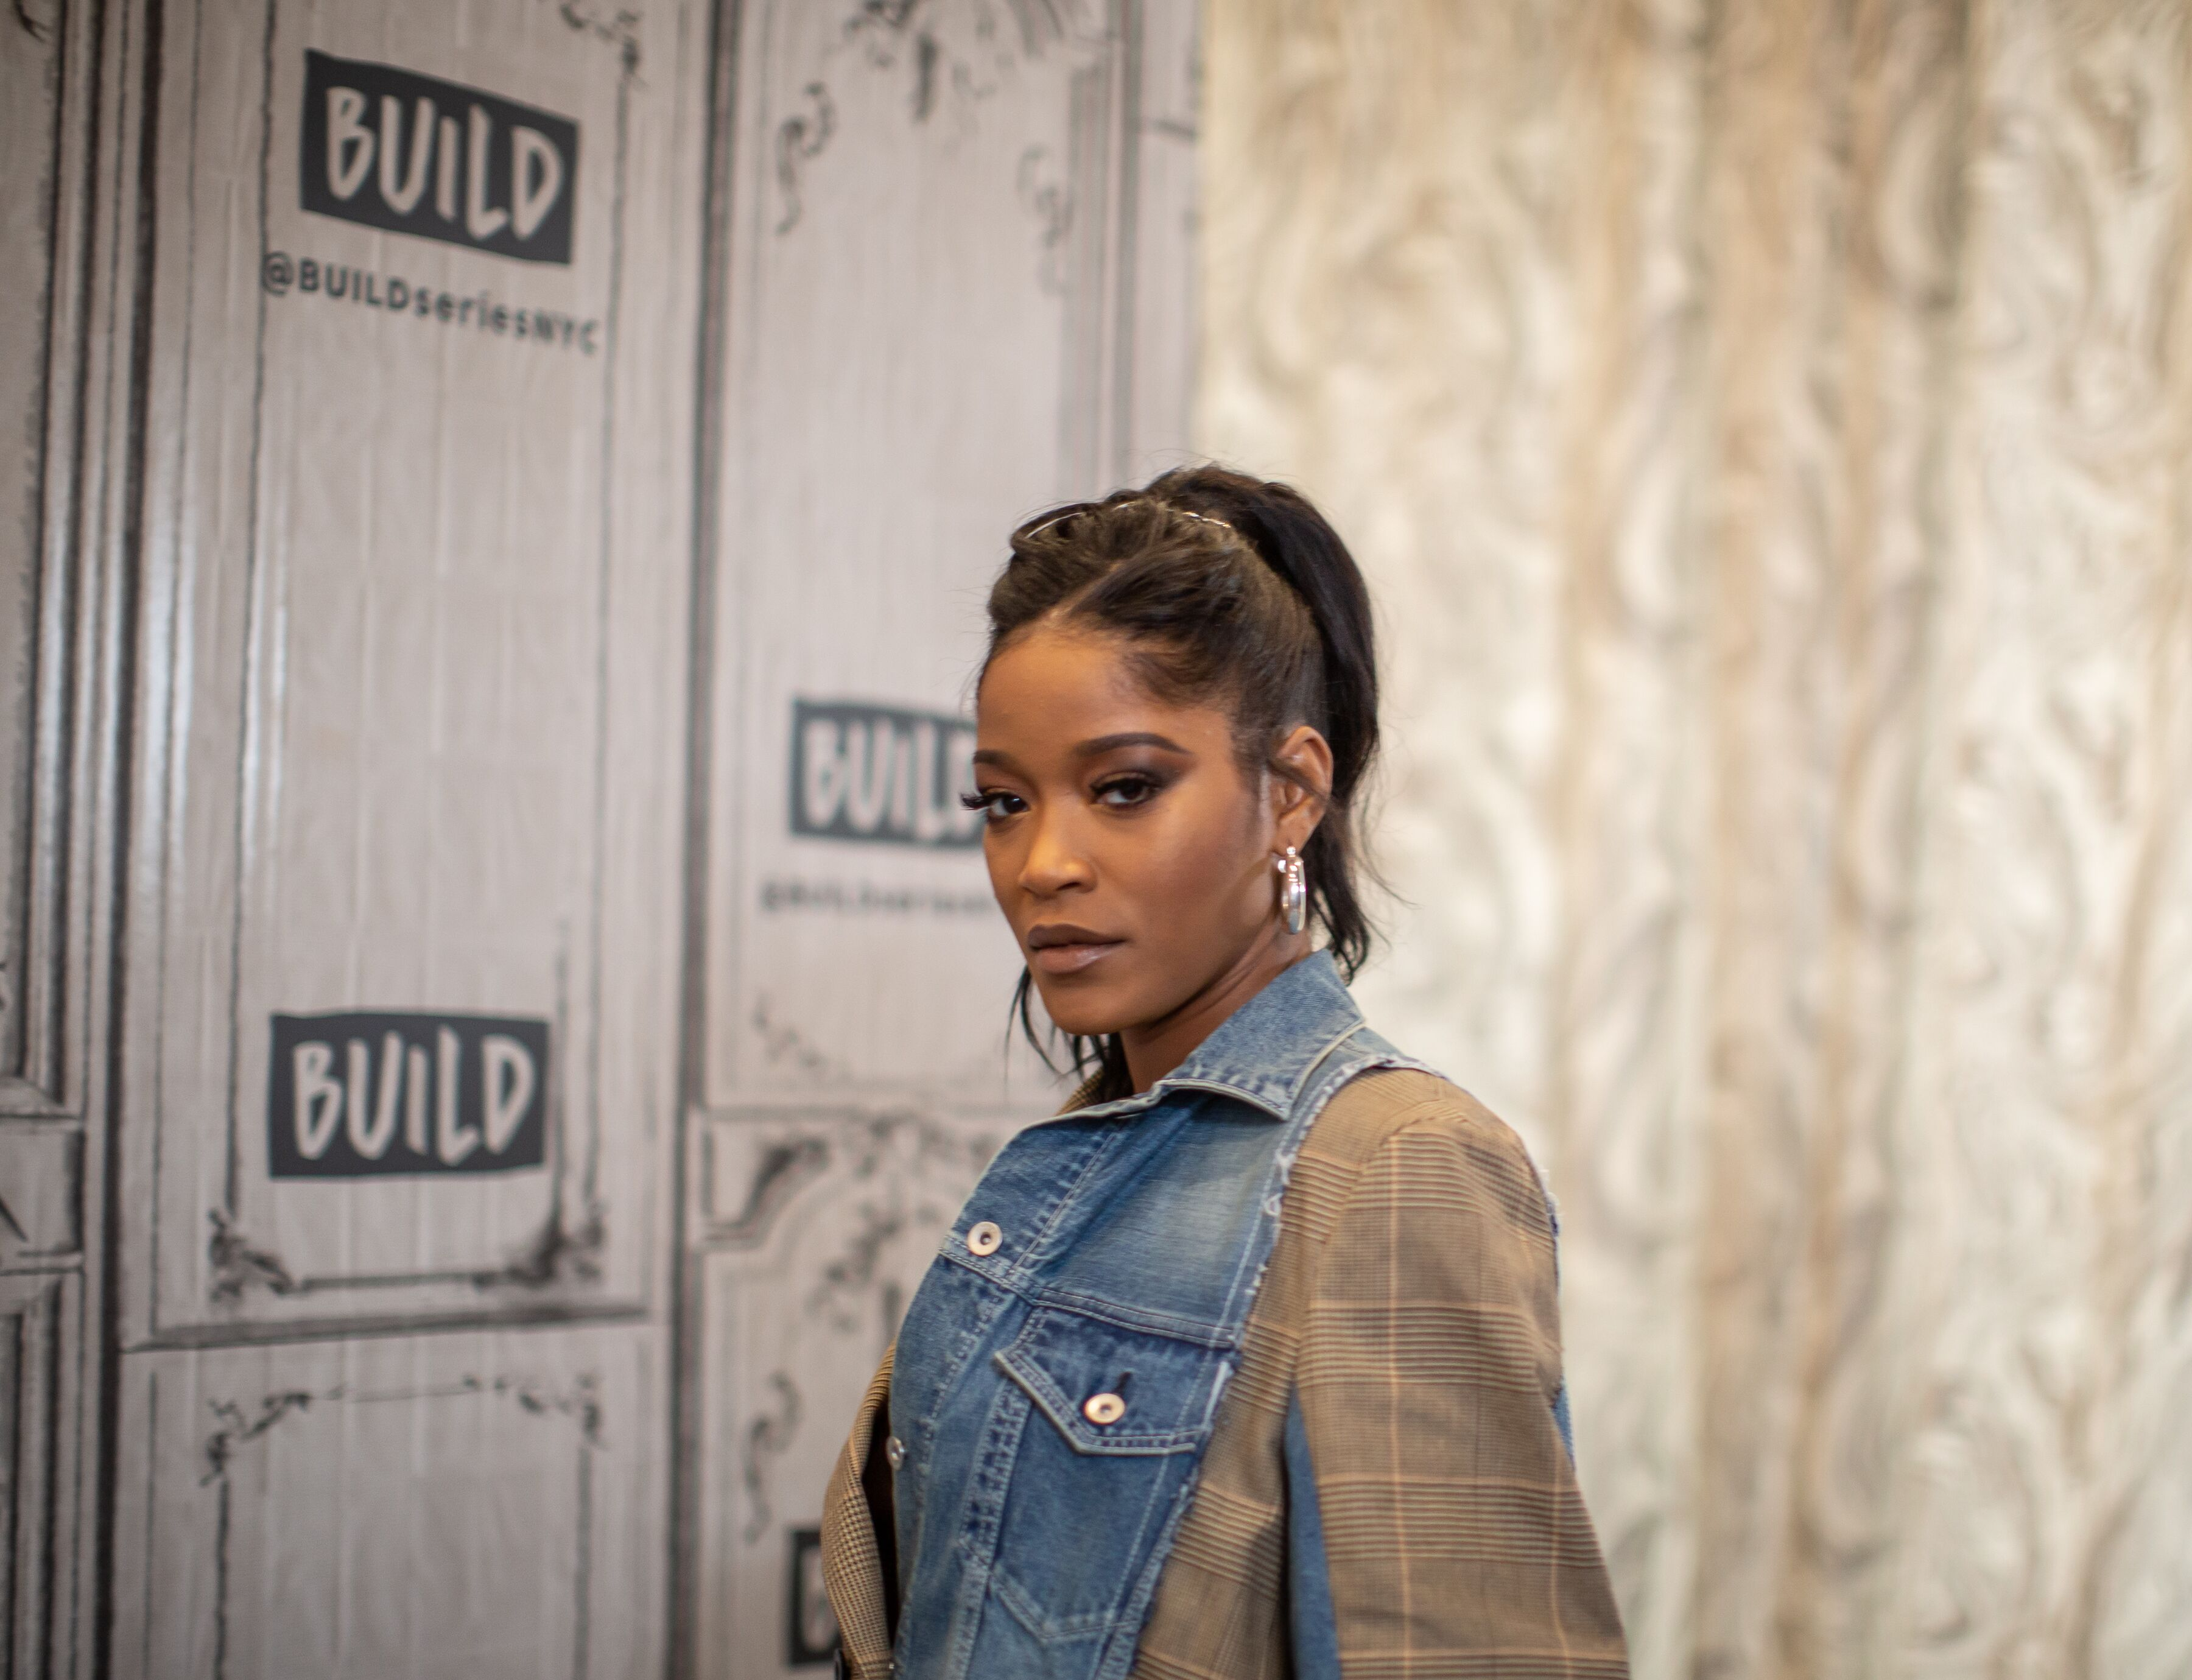 Keke Palmer at the BUILD event in New York City | Source: Getty Images/GlobalImagesUkraine